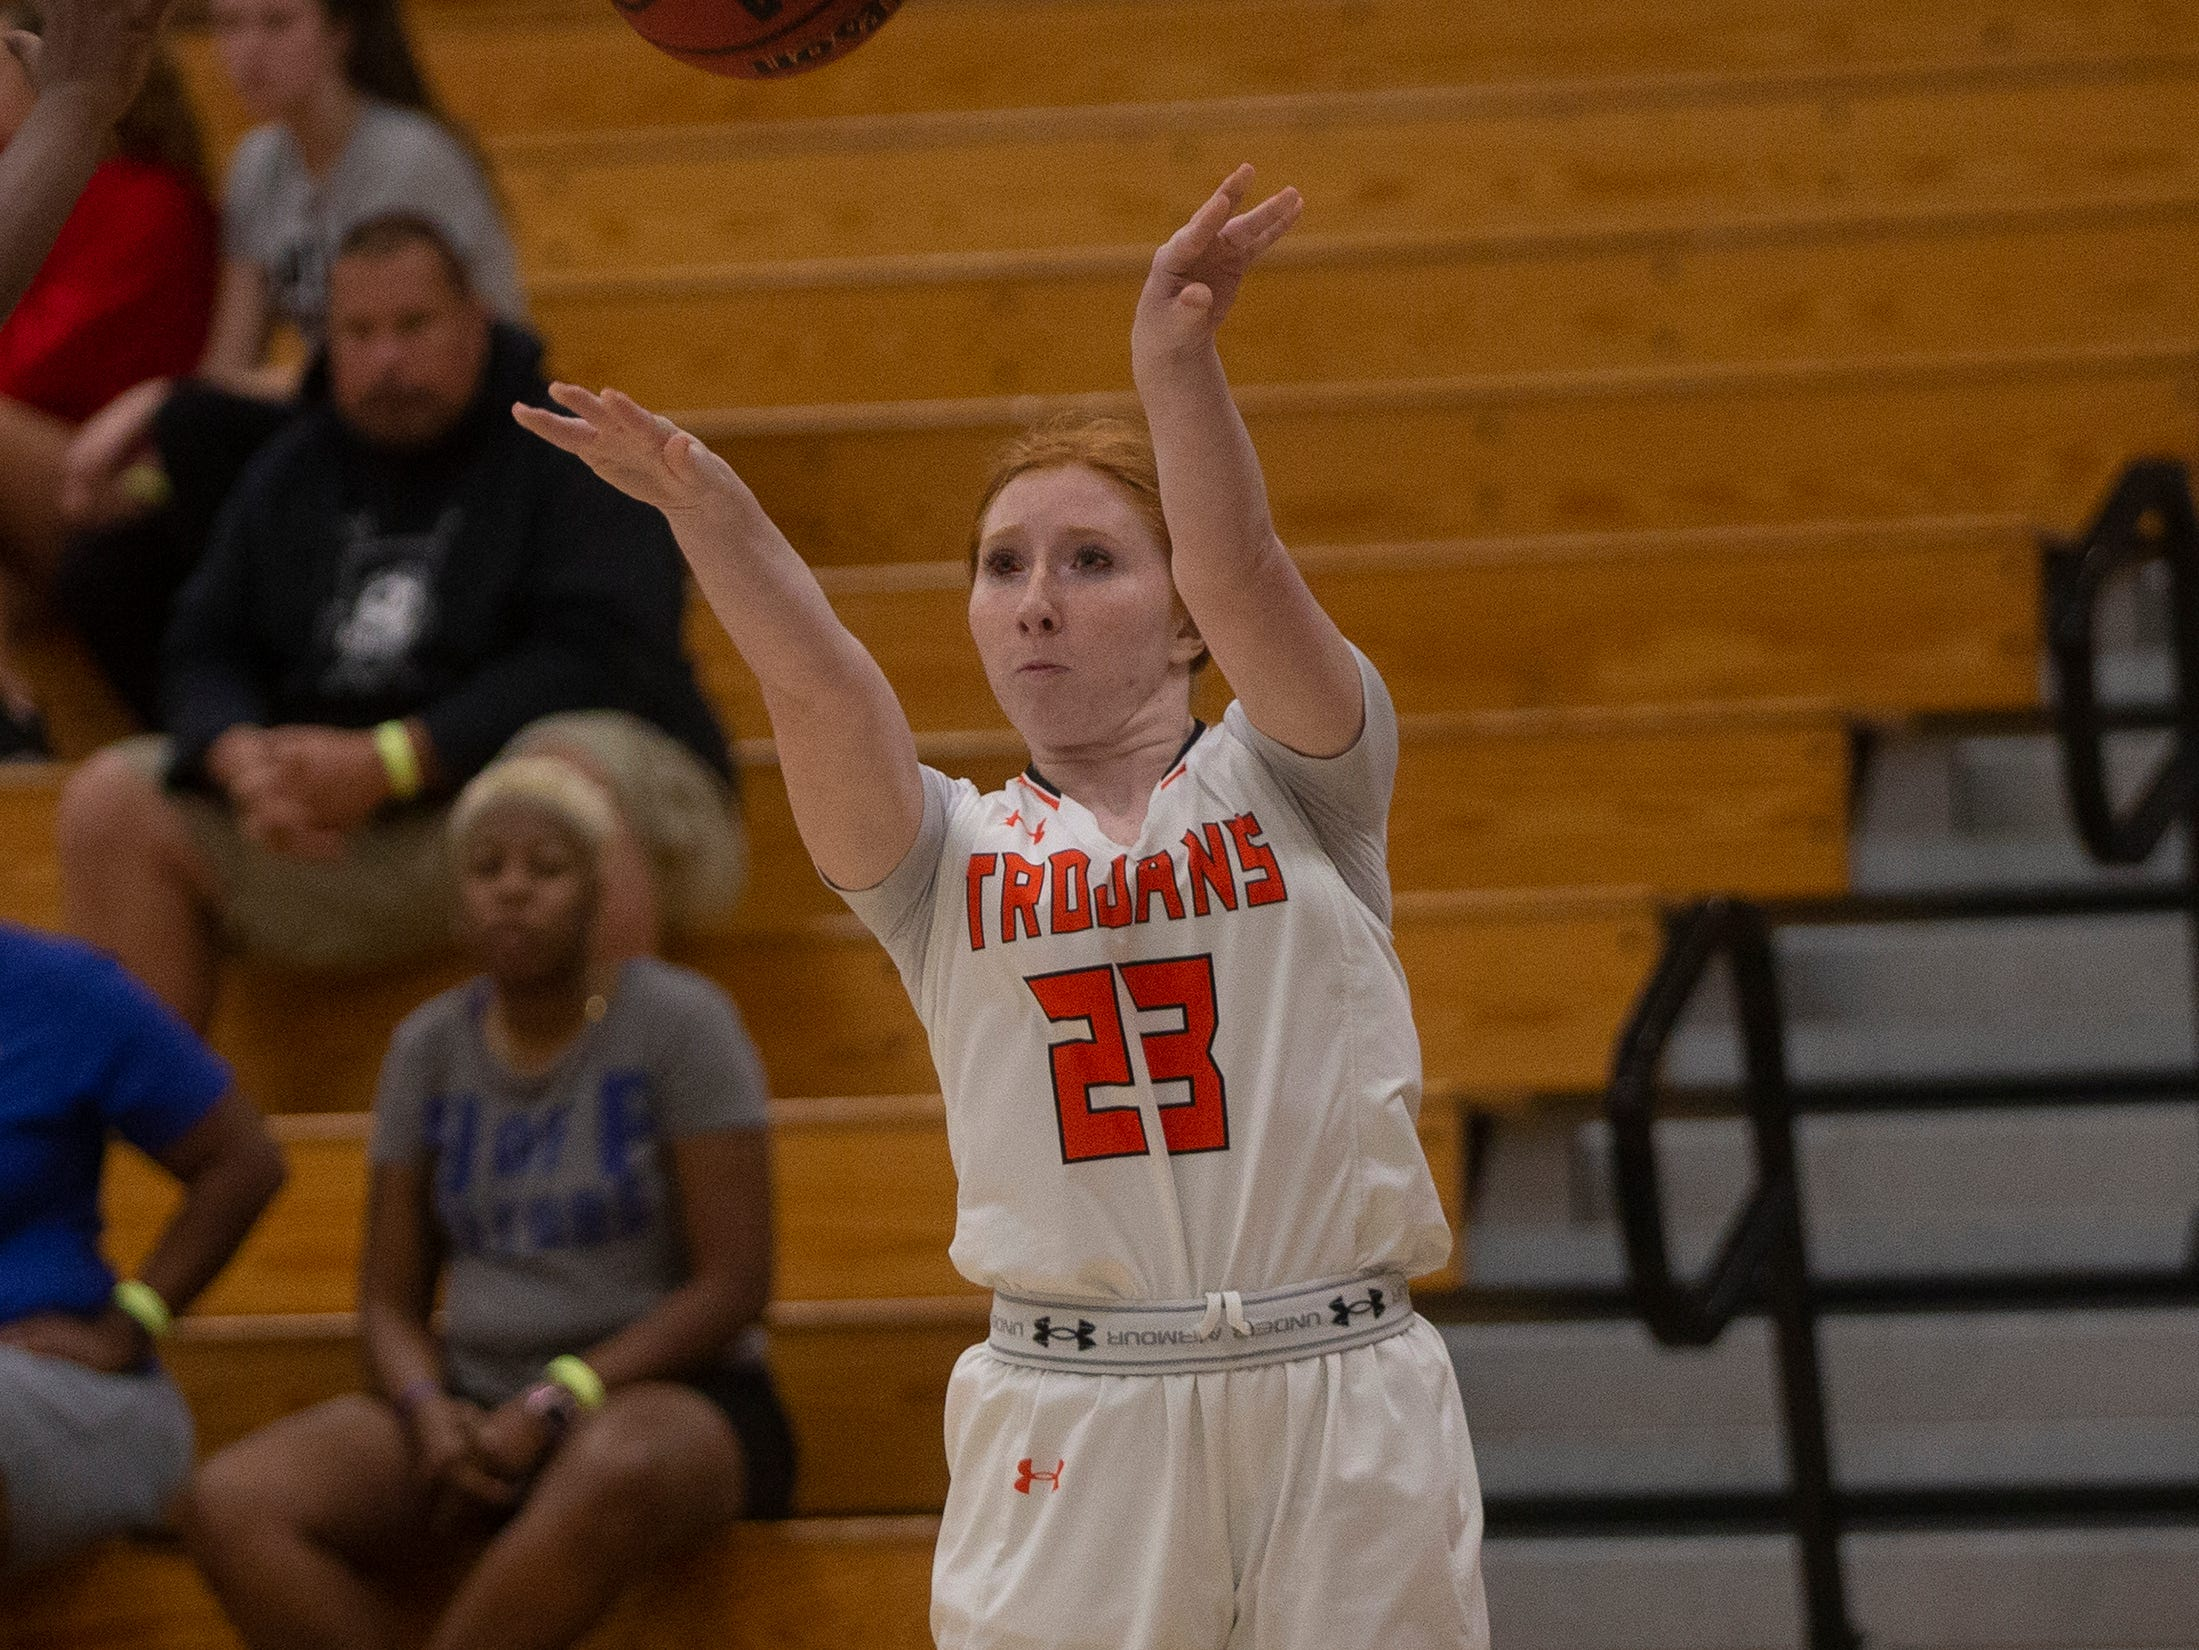 Lely High School's Bella Holan attempts a three-pointer during their basketball game against Mariners High School, Thursday, Feb. 6, 2019, at Lely High School.